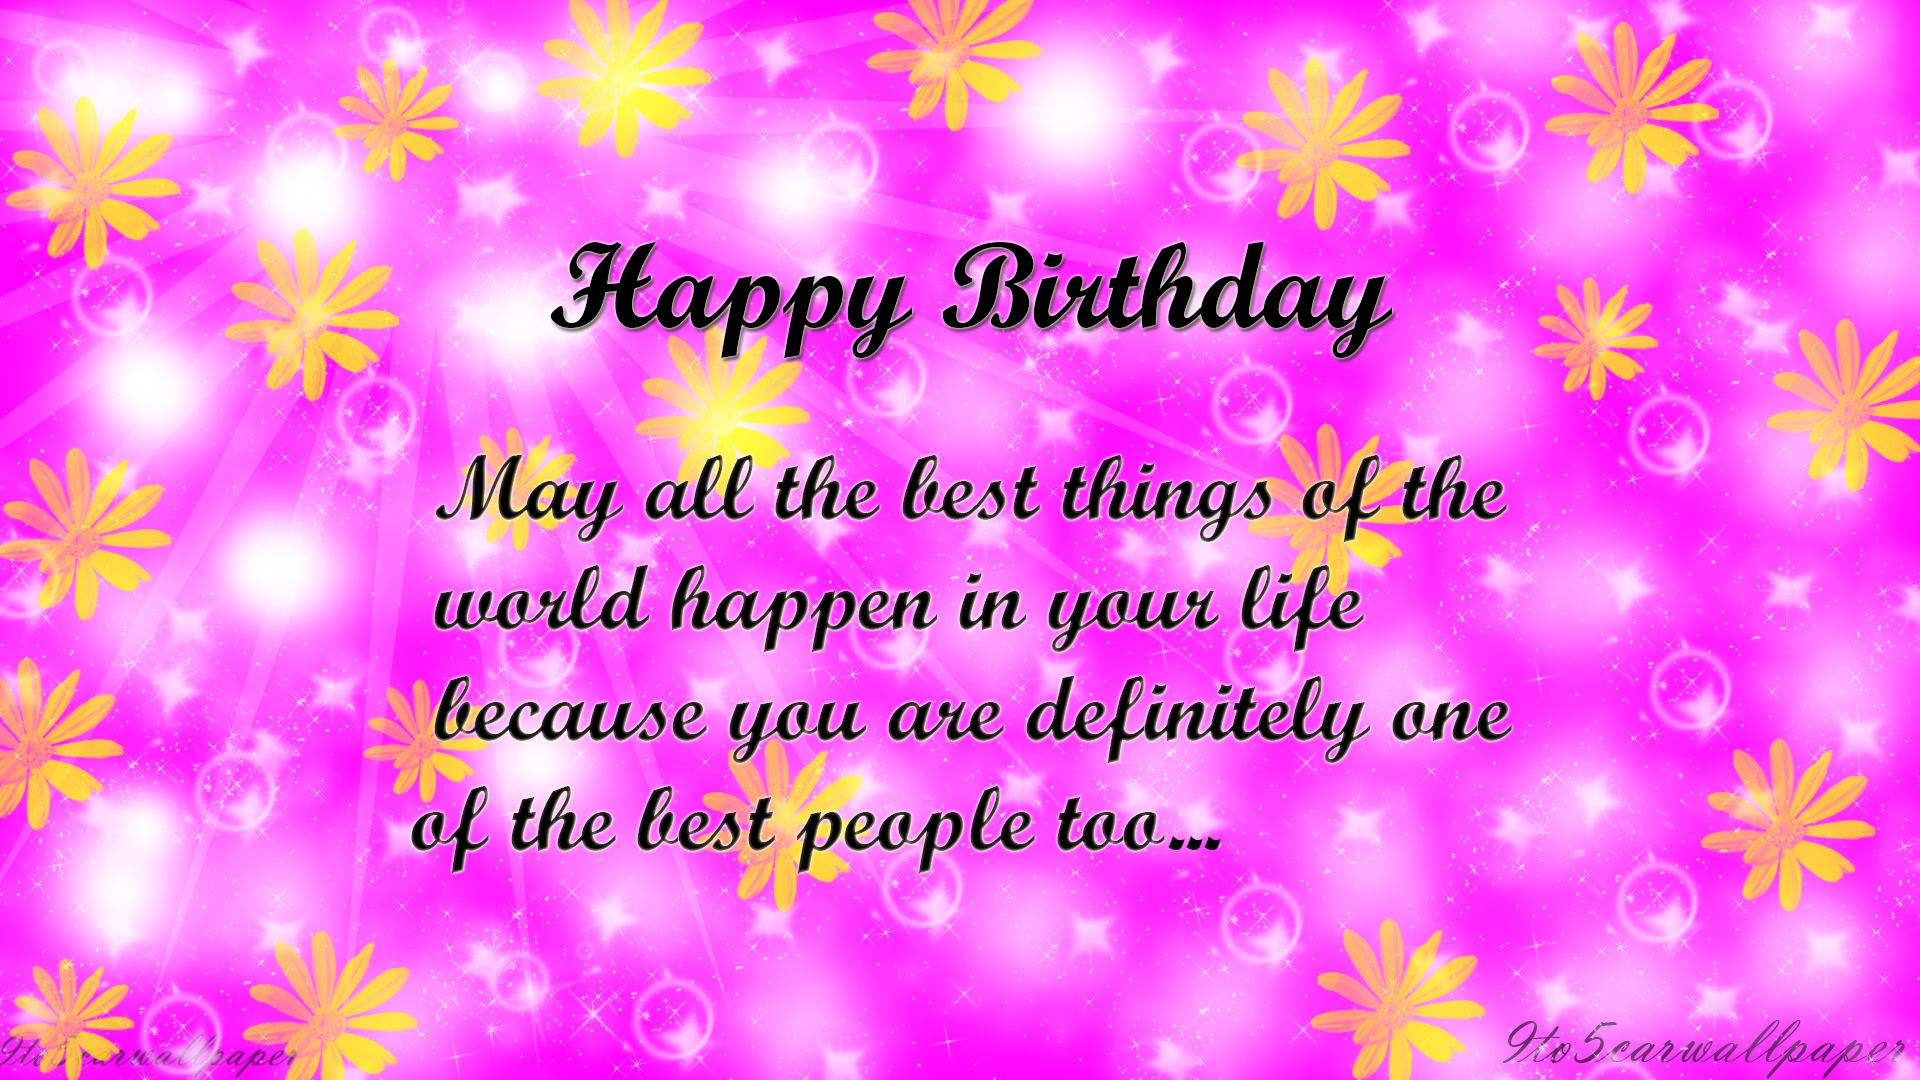 best birthday quotes images and wallpapers